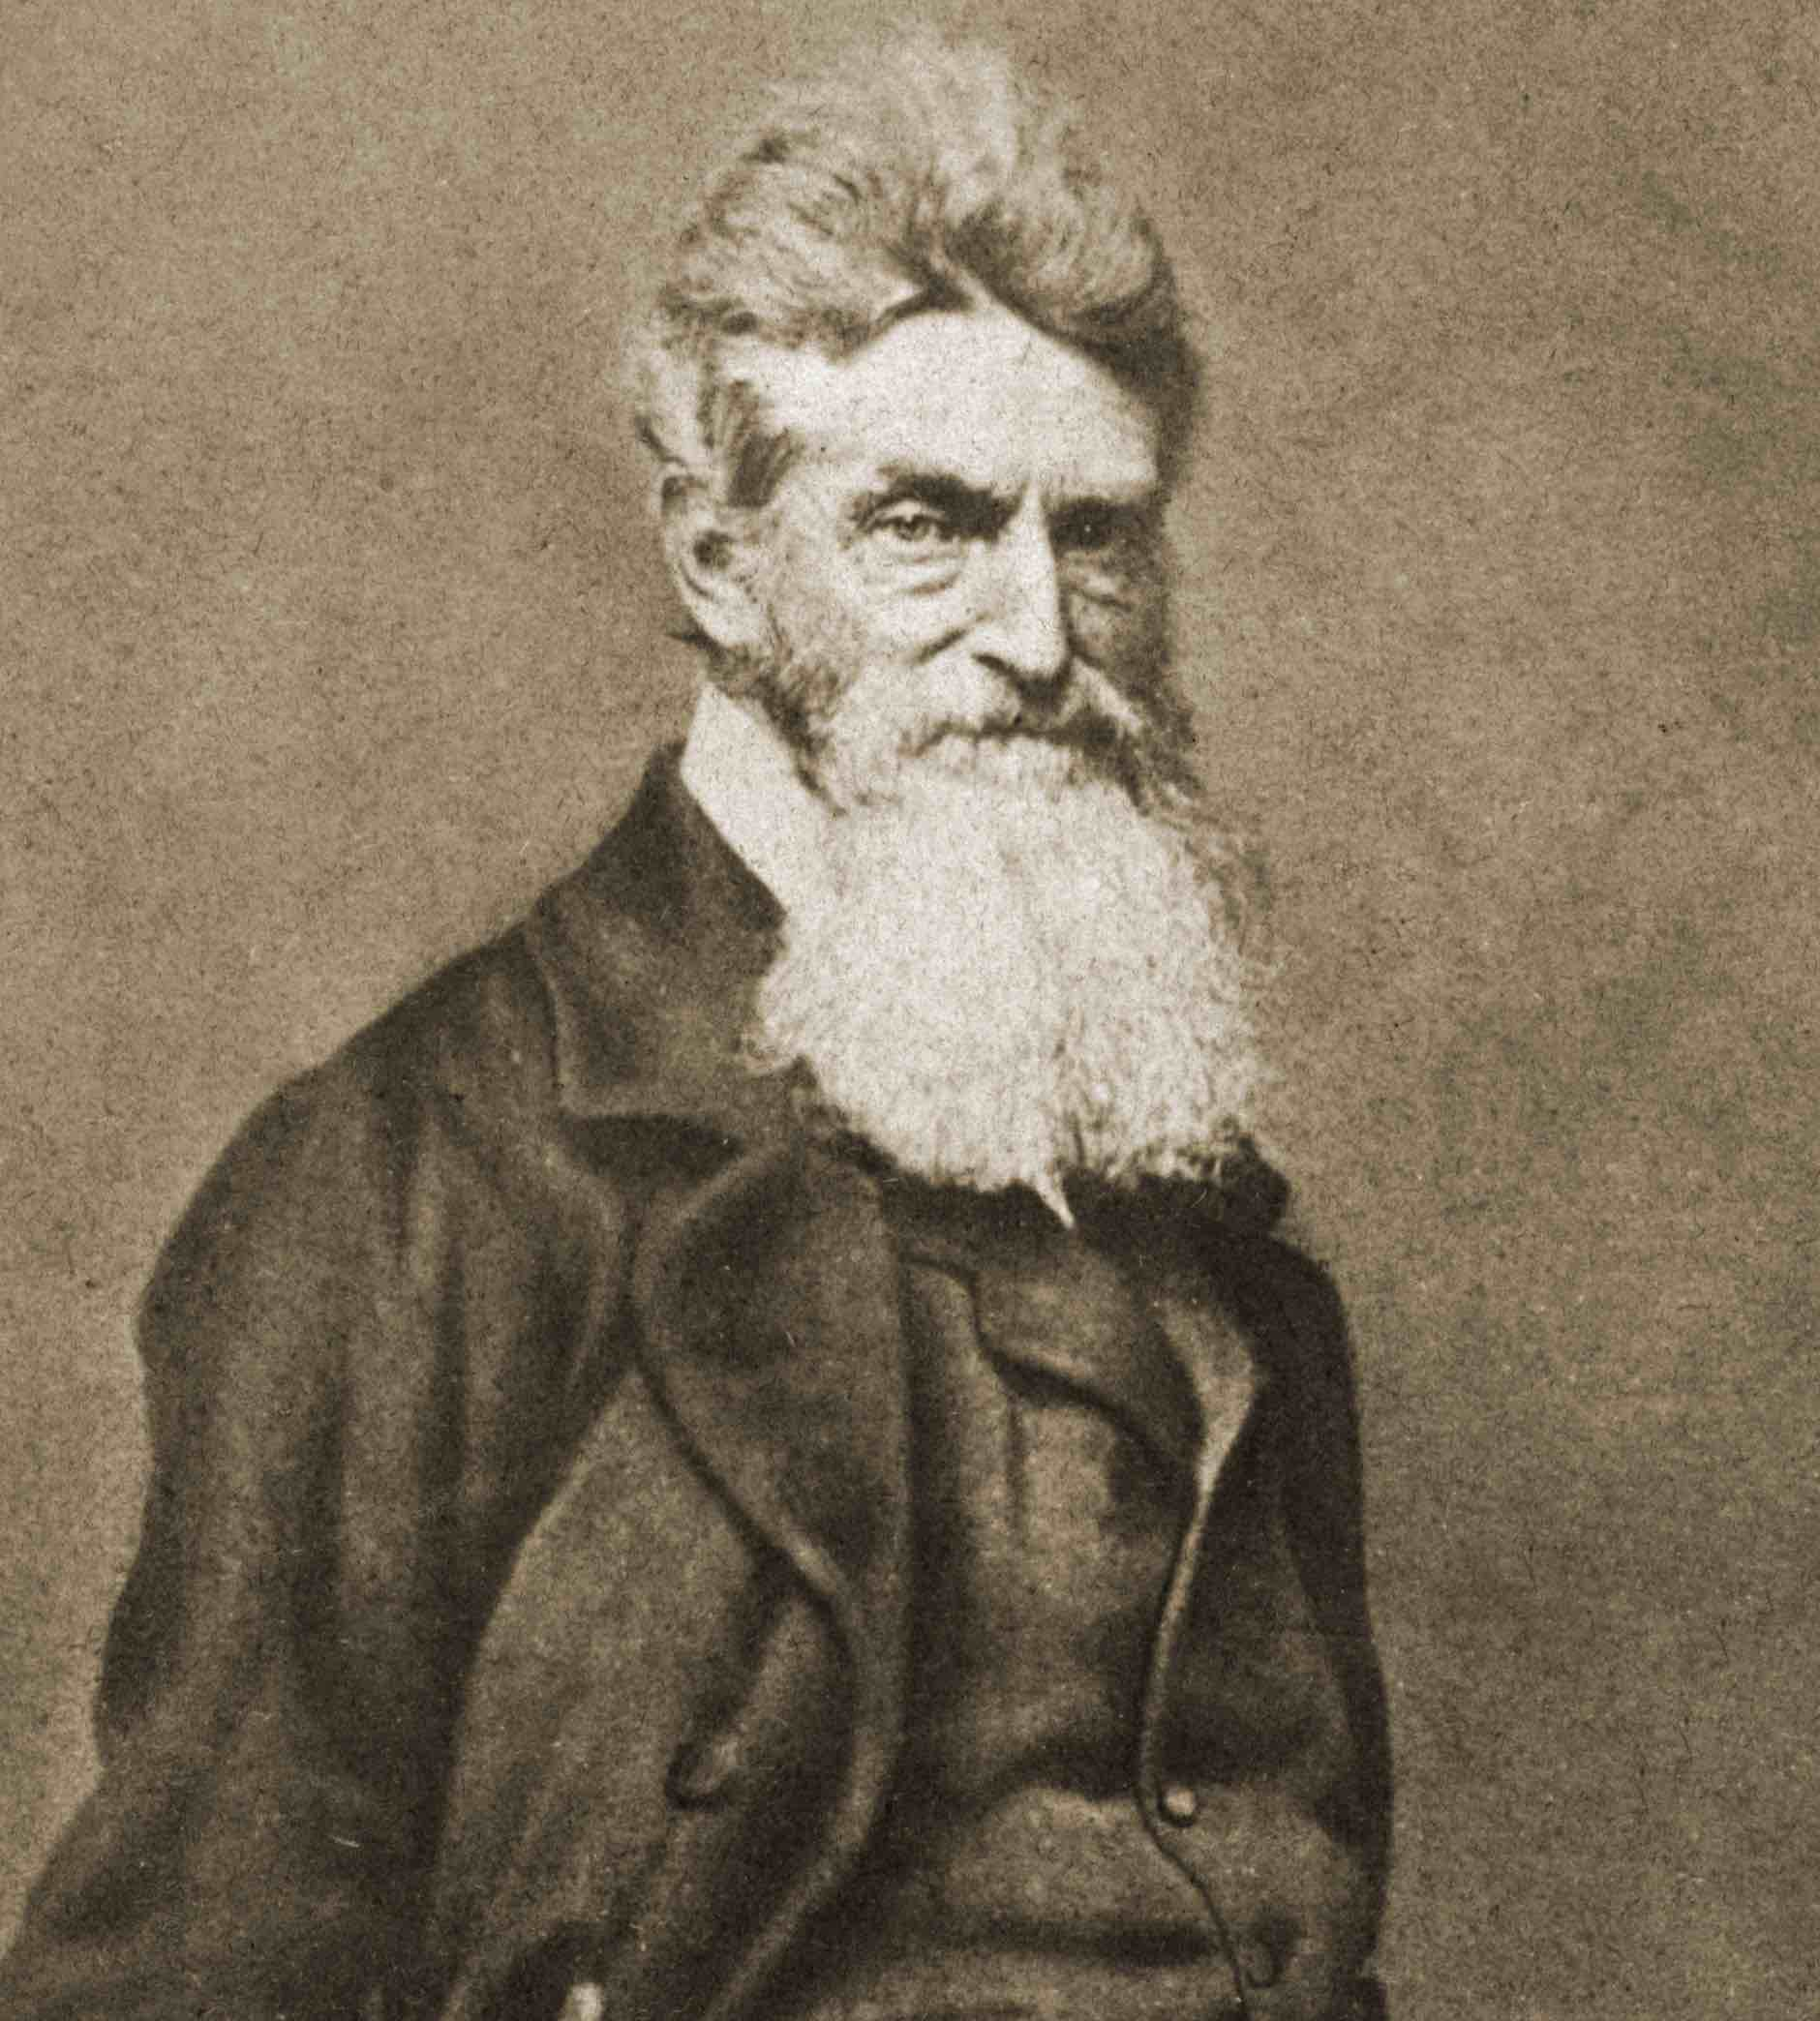 John Brown, with long white beard that is squared off at the end, right around the area where his heart is.